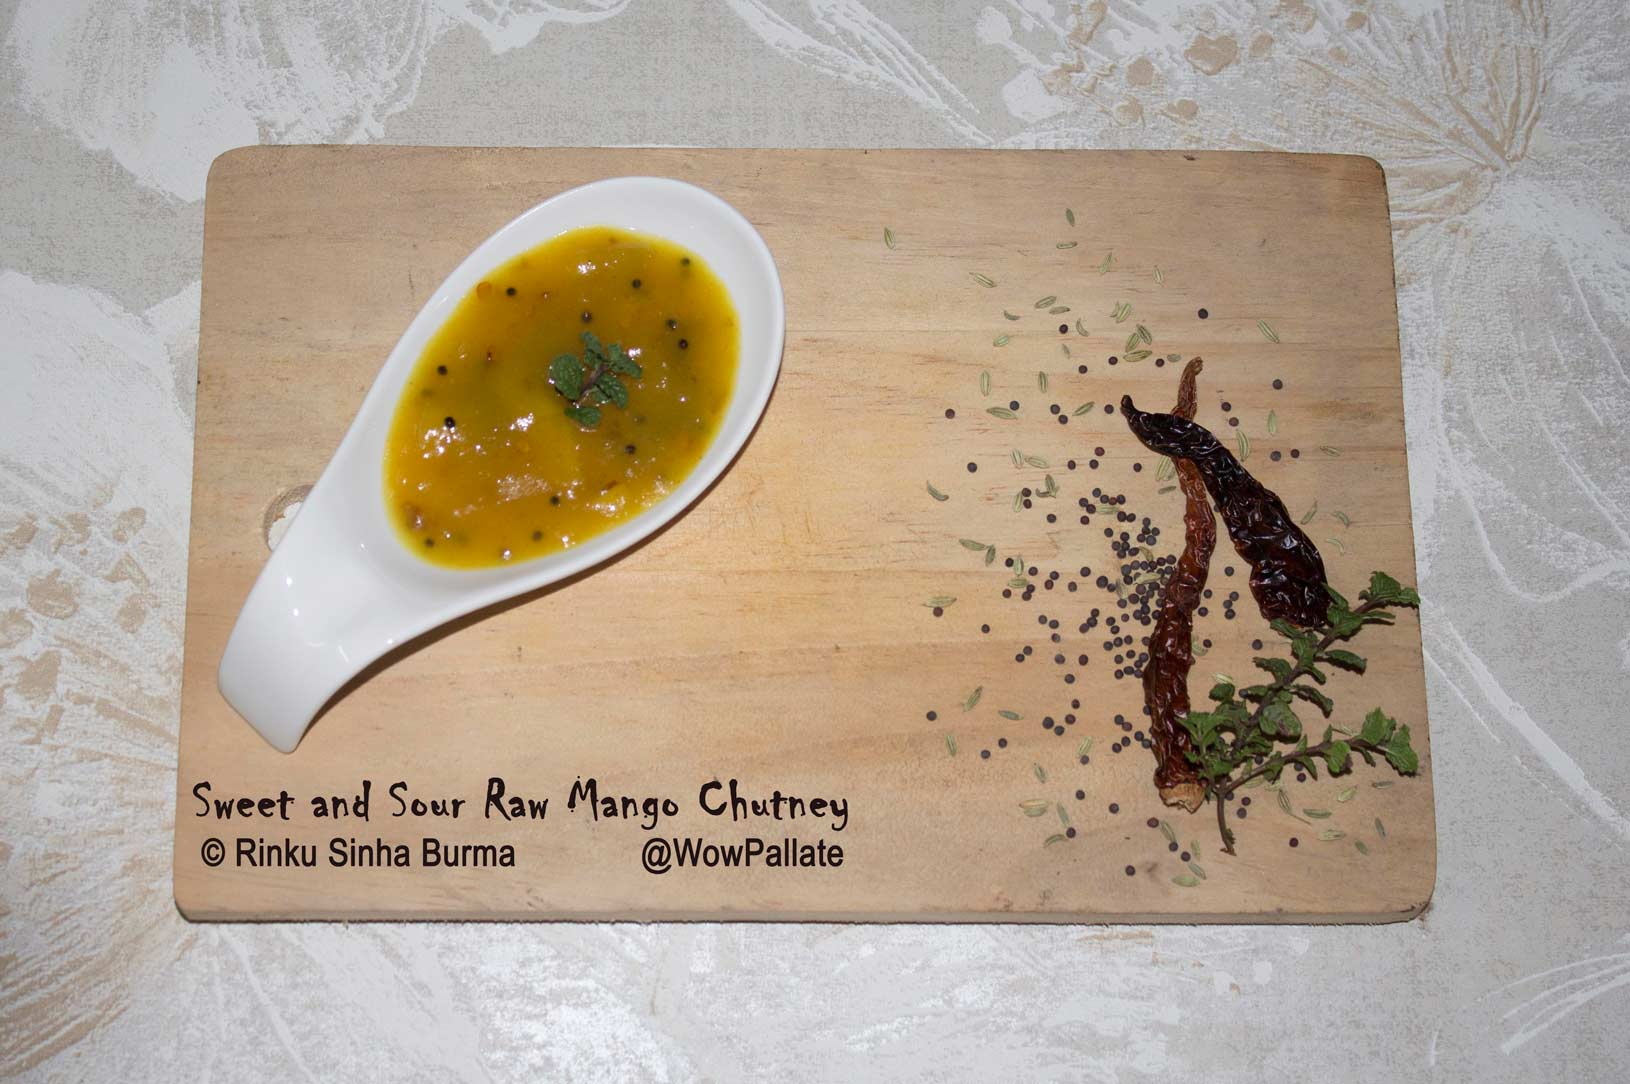 Sweet and Sour Mango Chutney